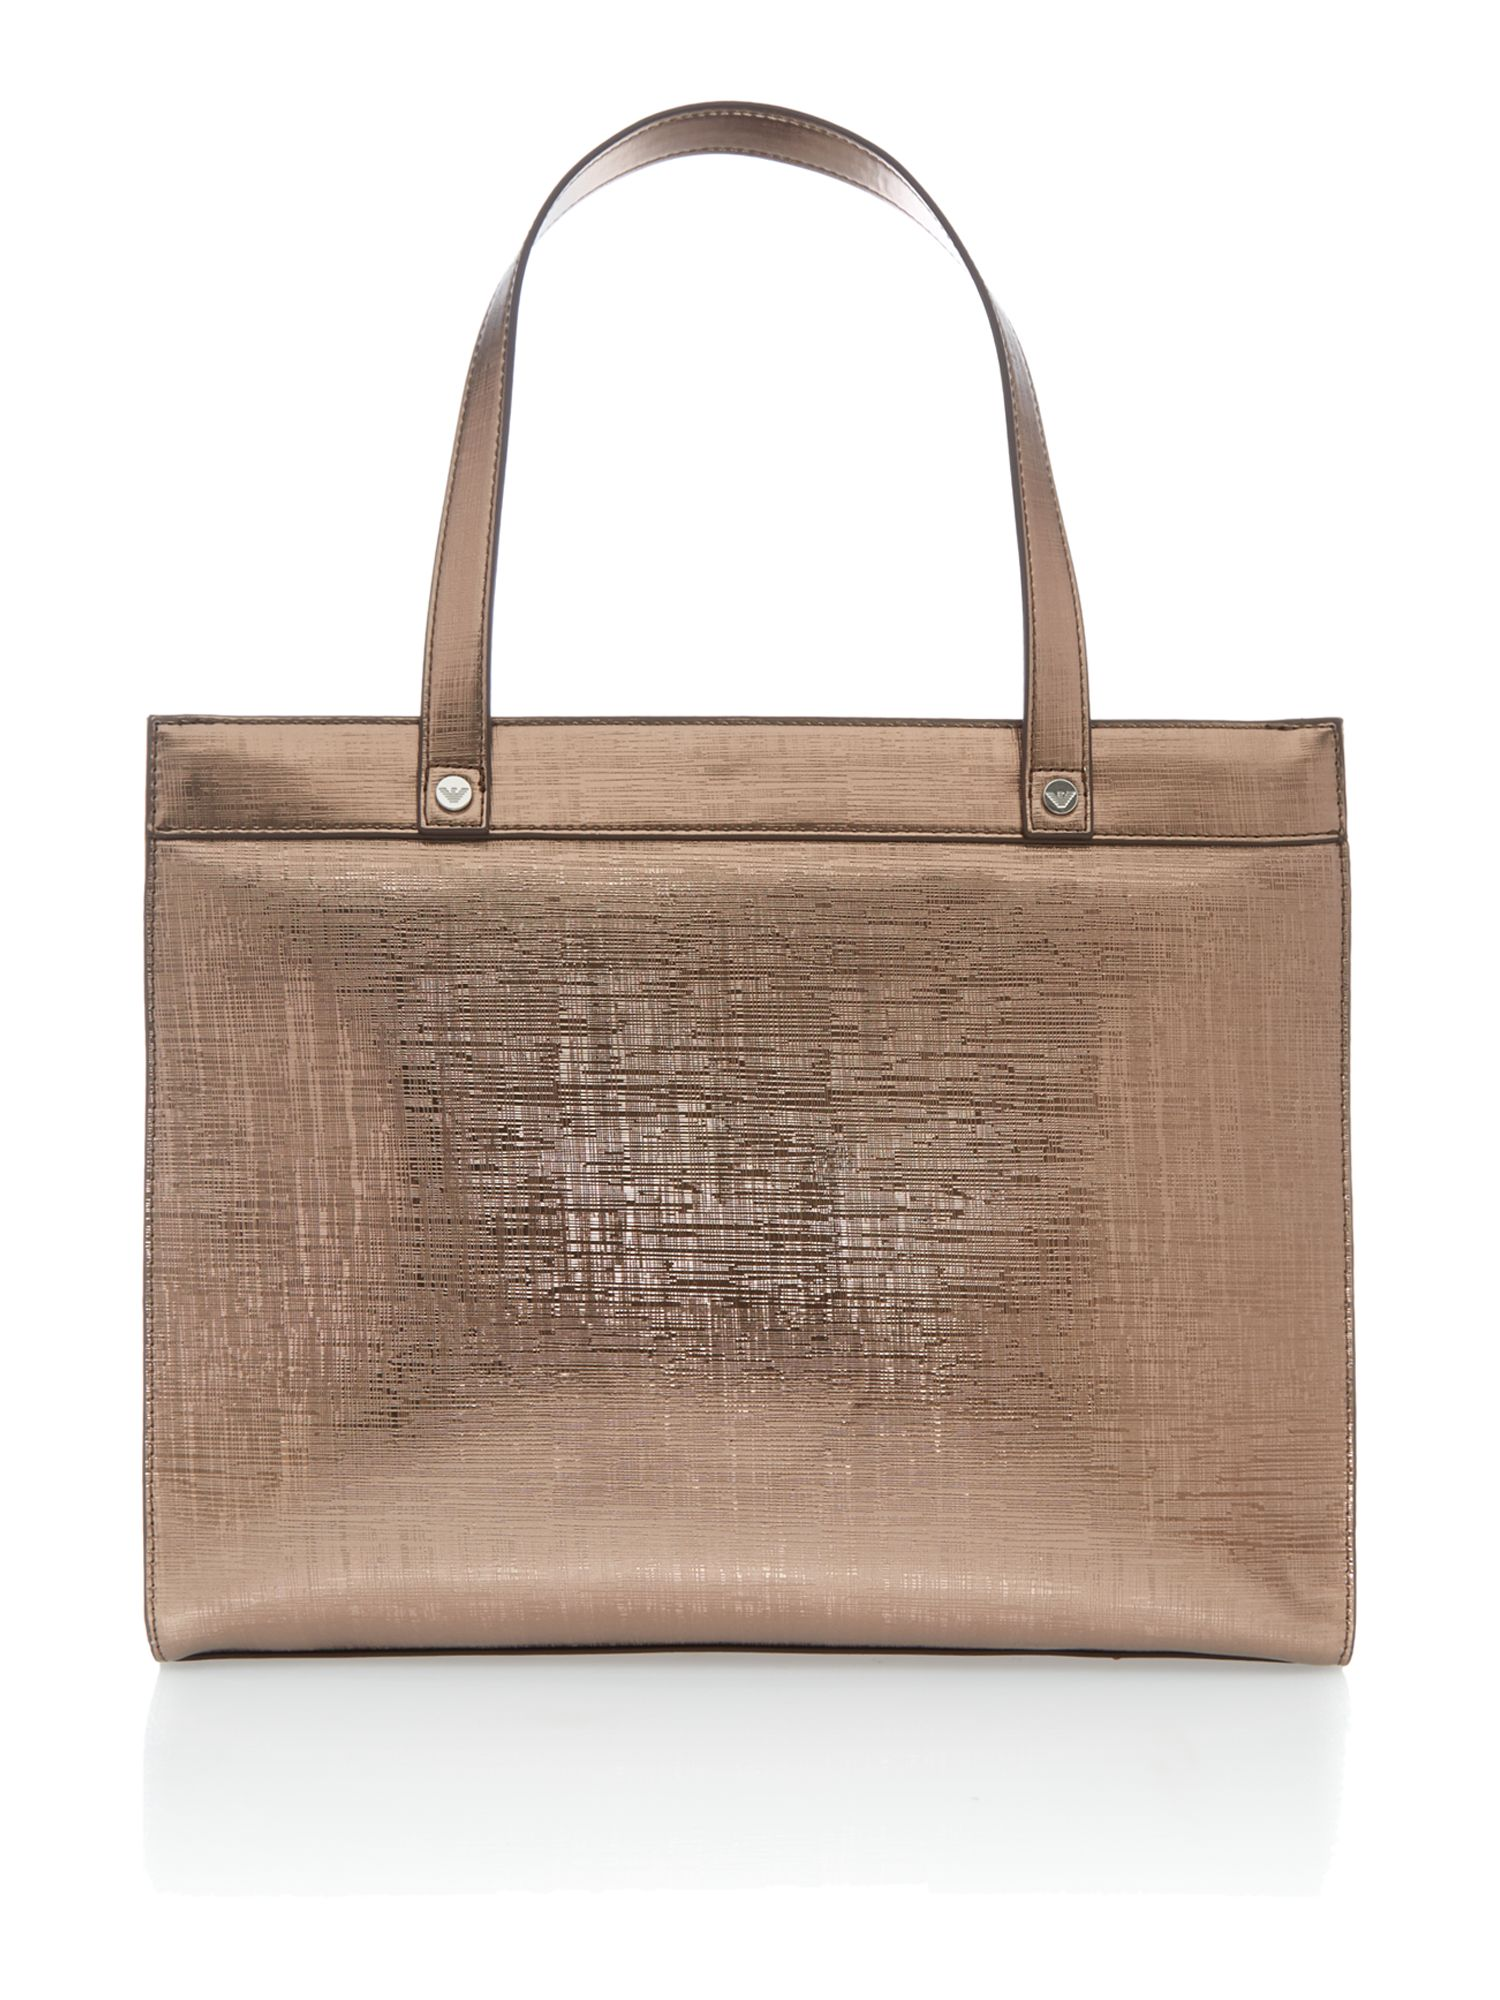 Medium metallic silver tote bag